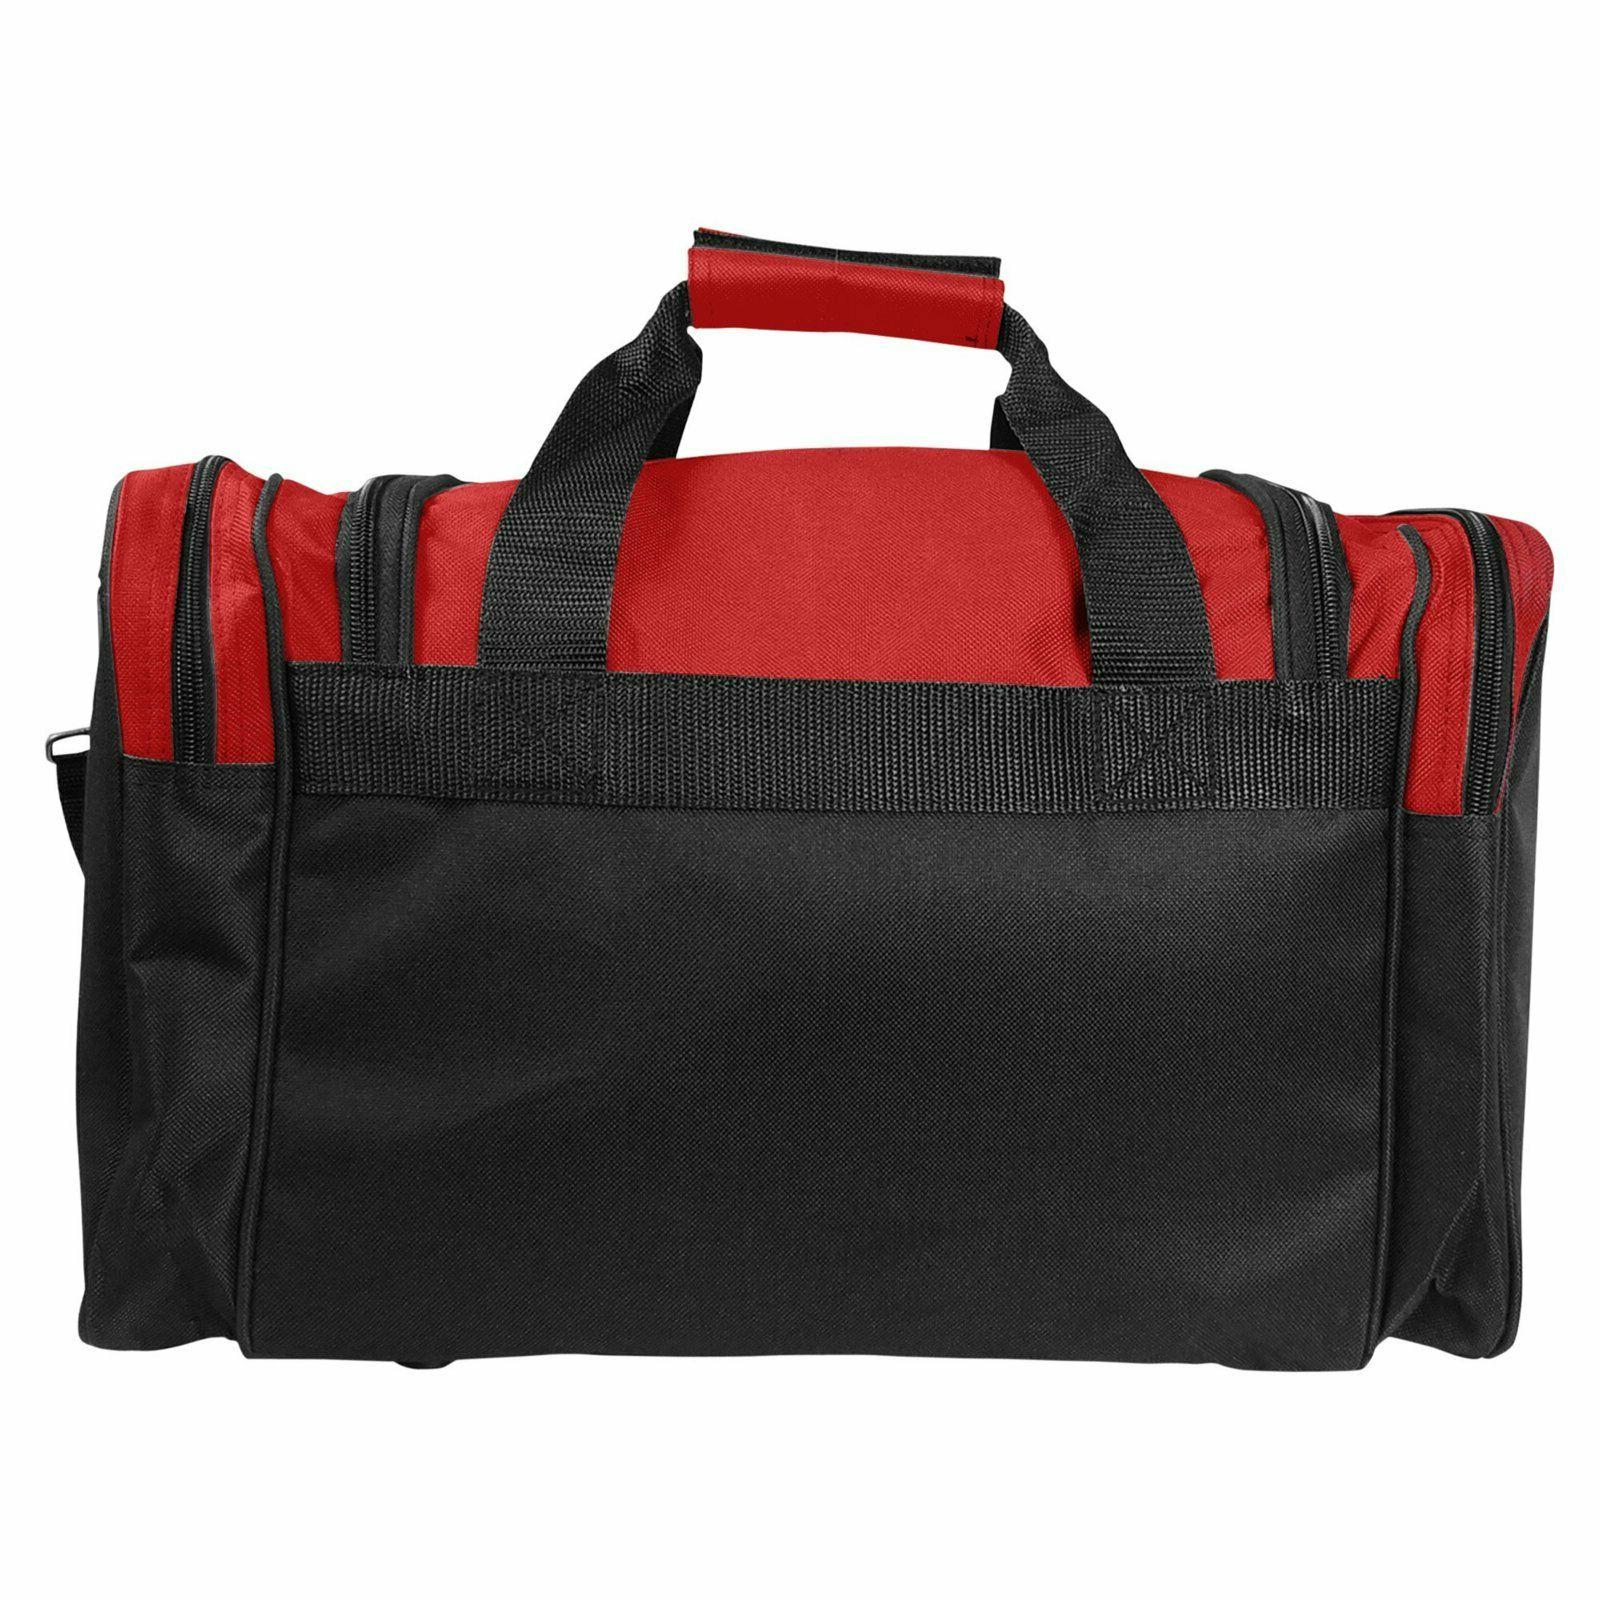 DALIX Bag with Dual Front Mesh Pockets in